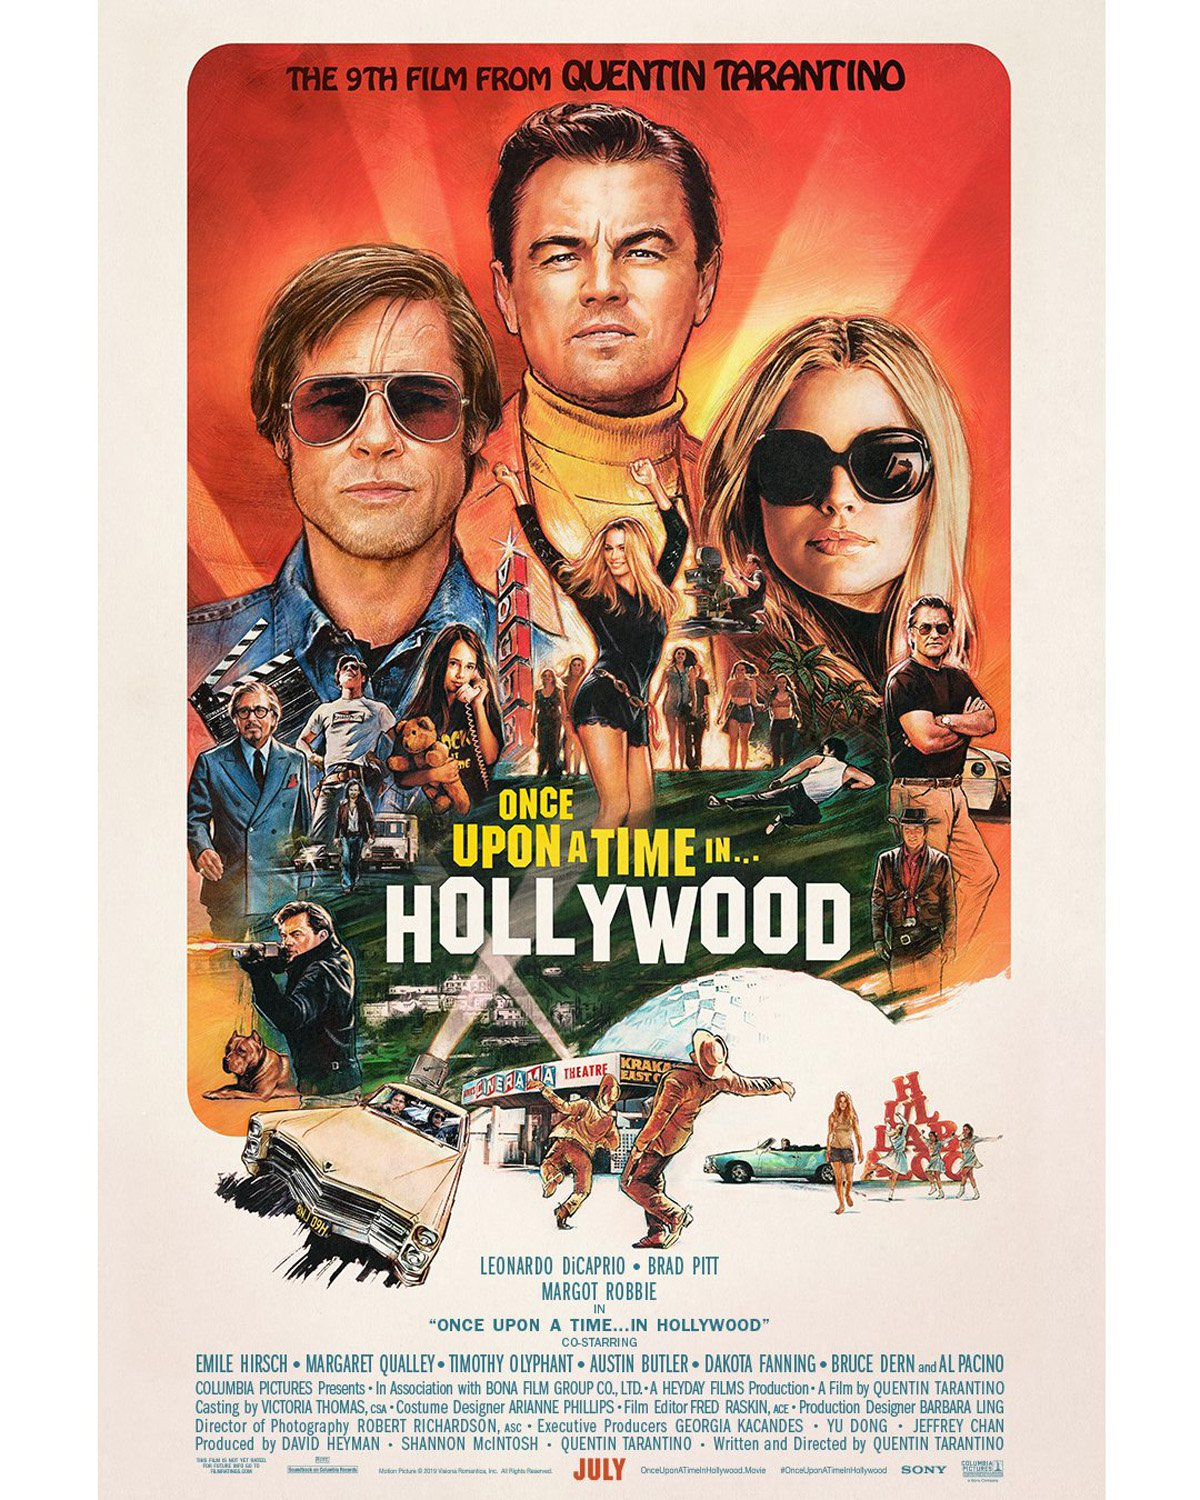 Check Out The New Poster For Quentin Tarantino's ONCE UPON A TIME IN HOLLYWOOD-social